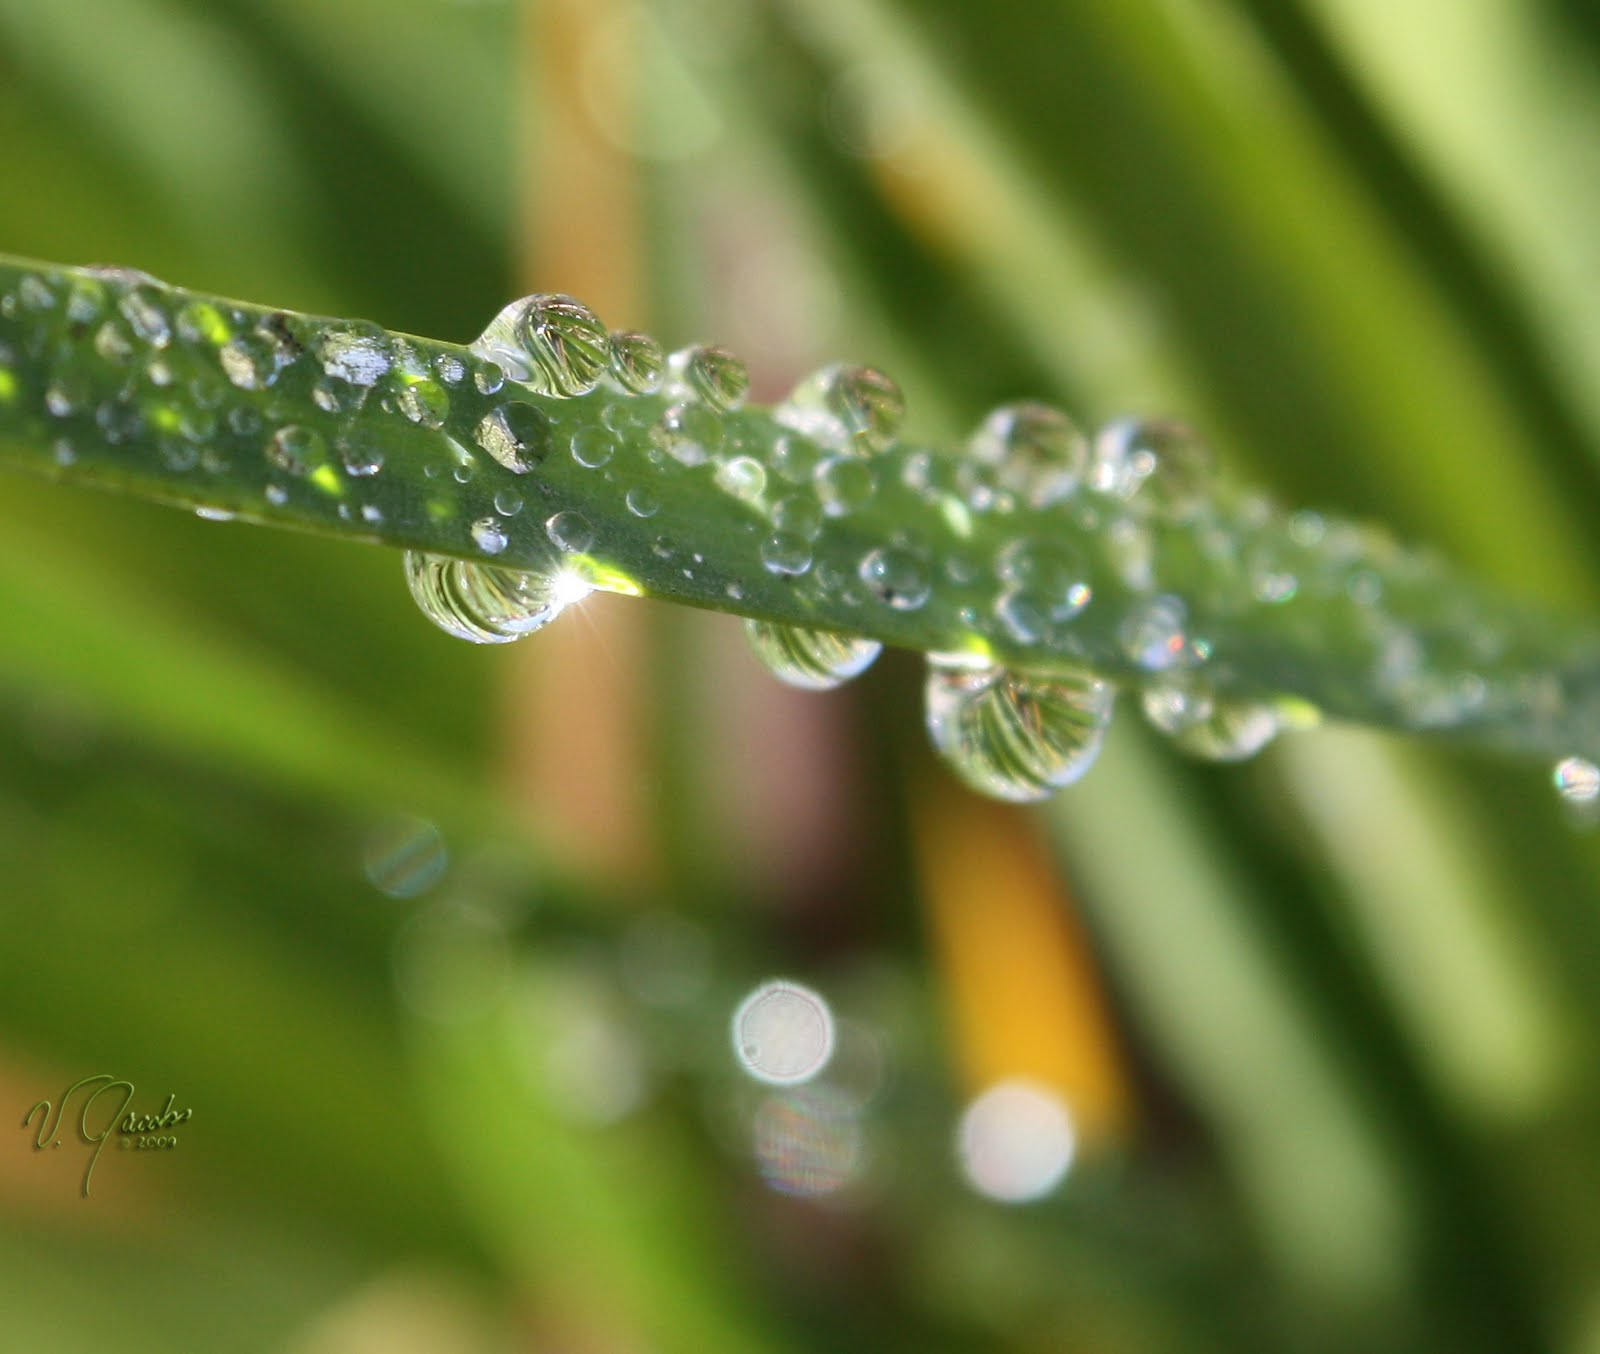 [dew+on+leaf]